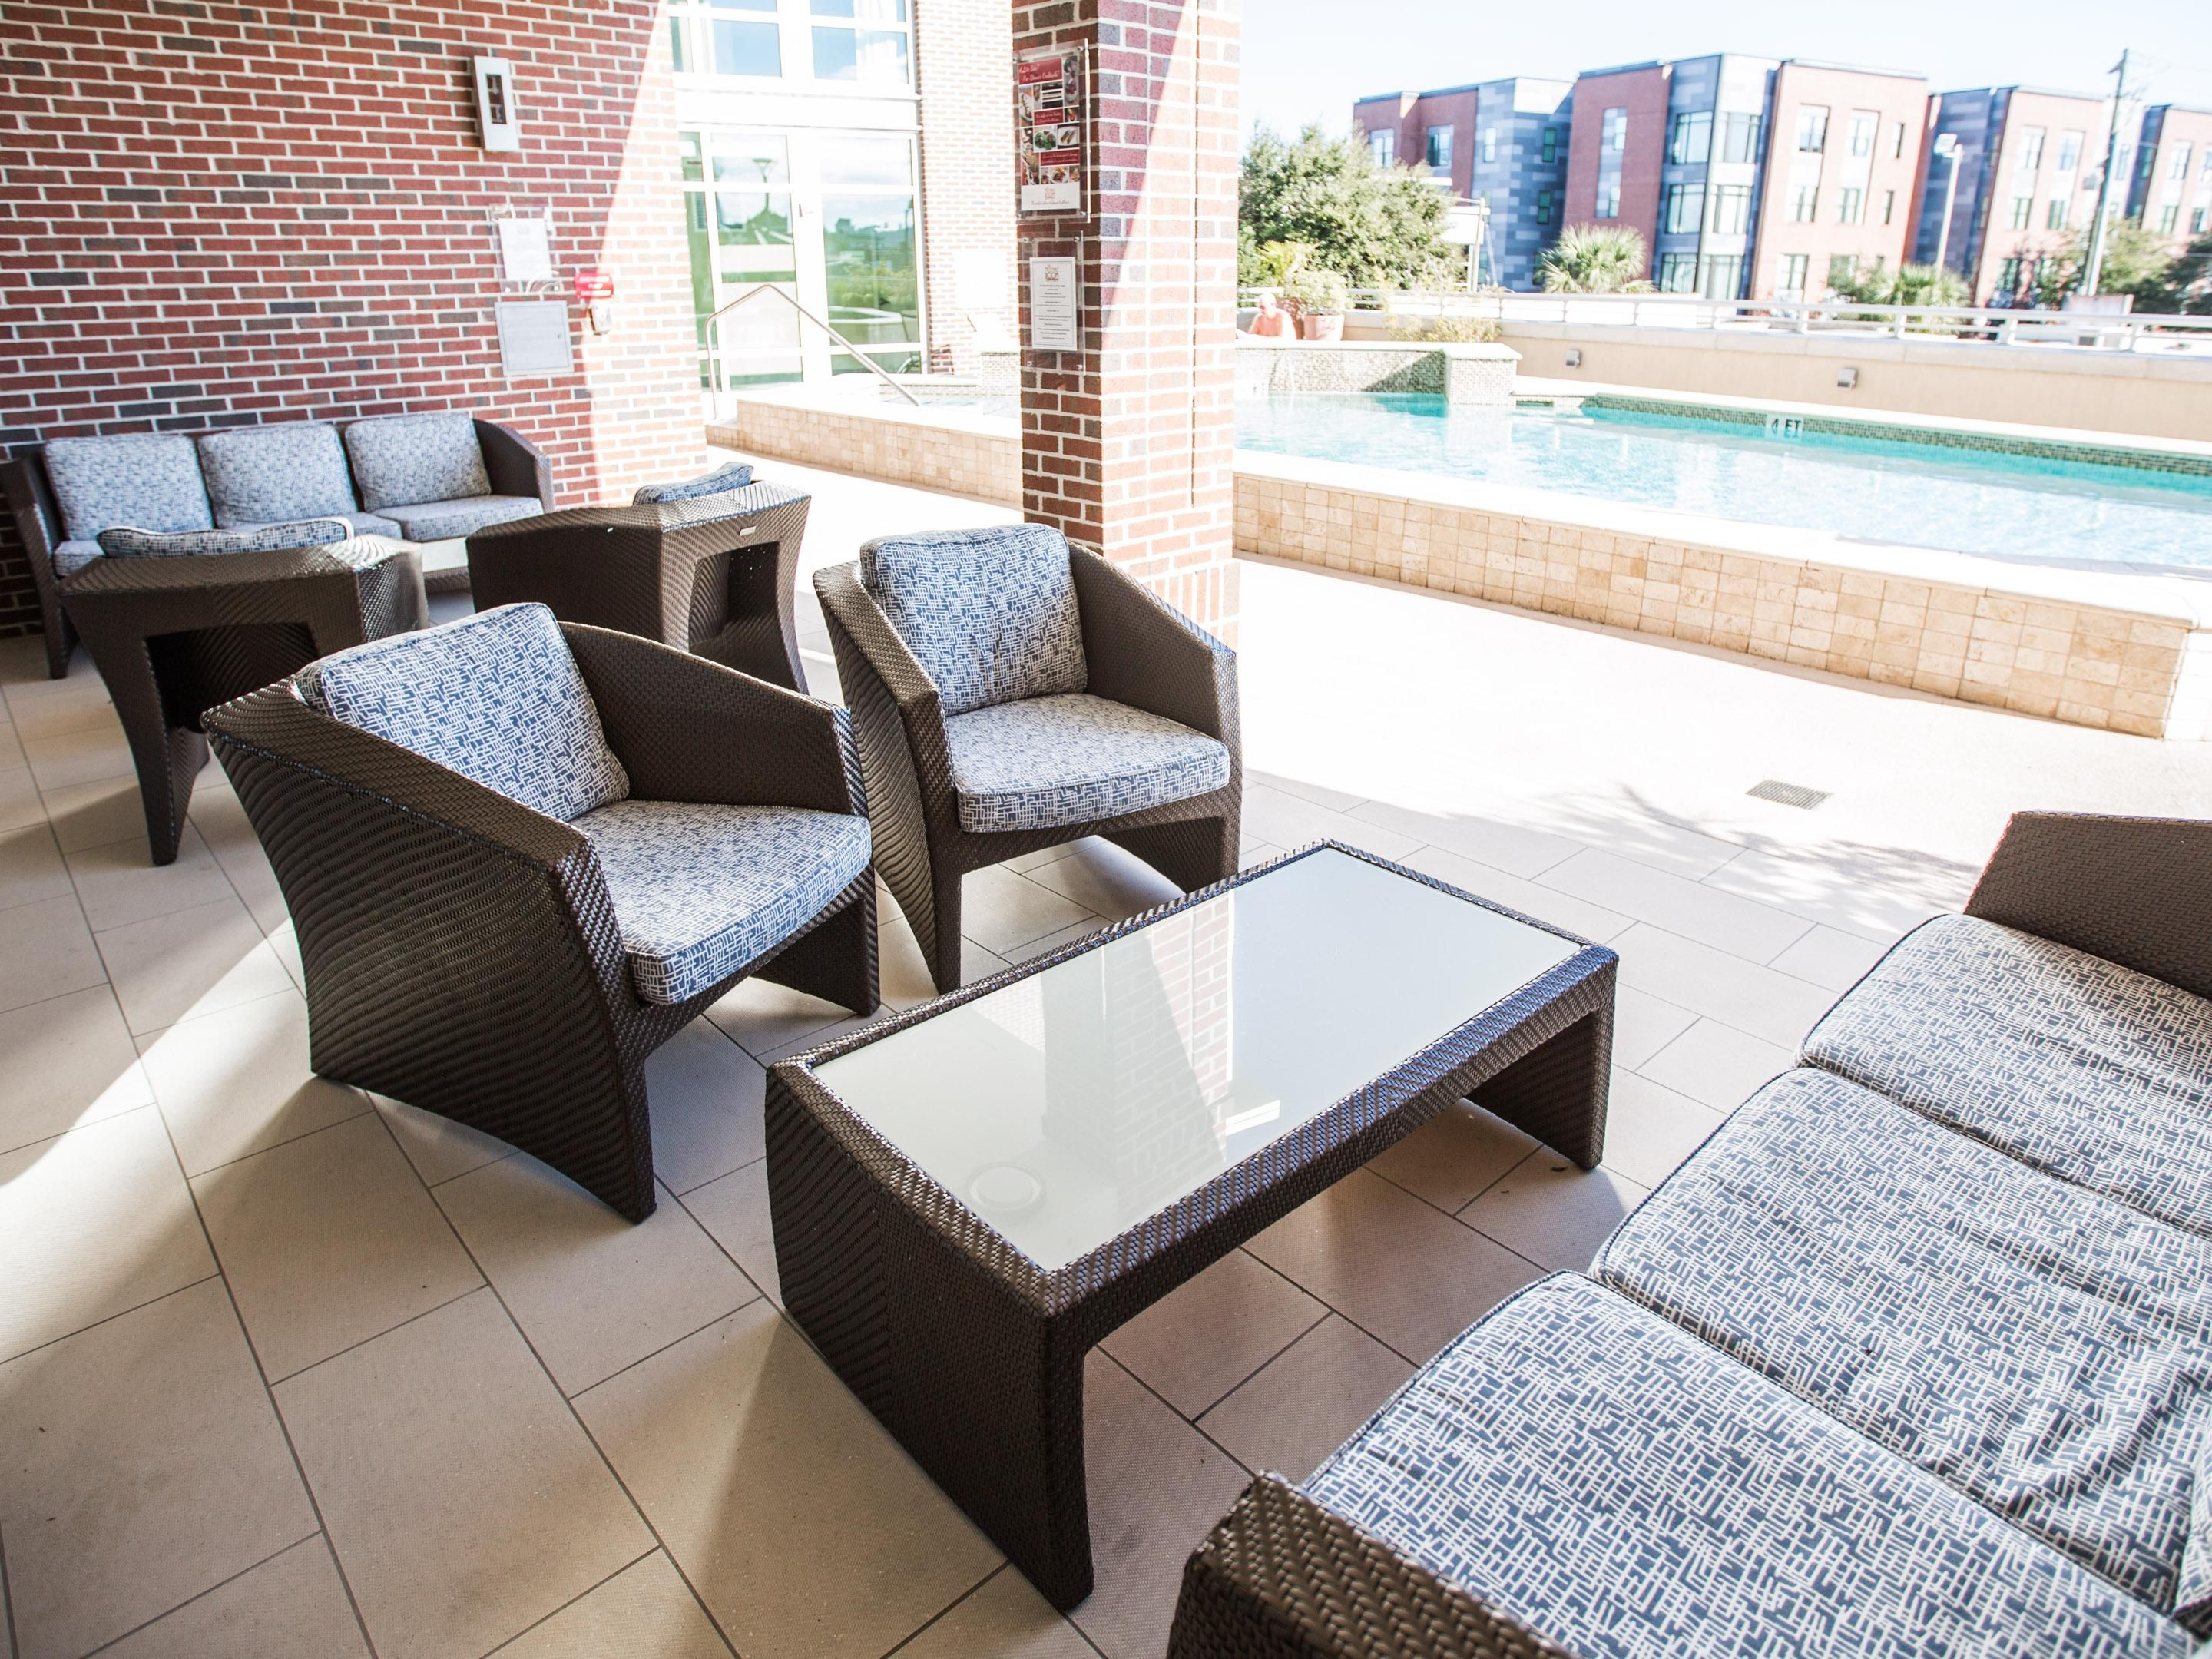 Enjoy our Covered Patio, Ceiling Fans & LIving Room Style Seating